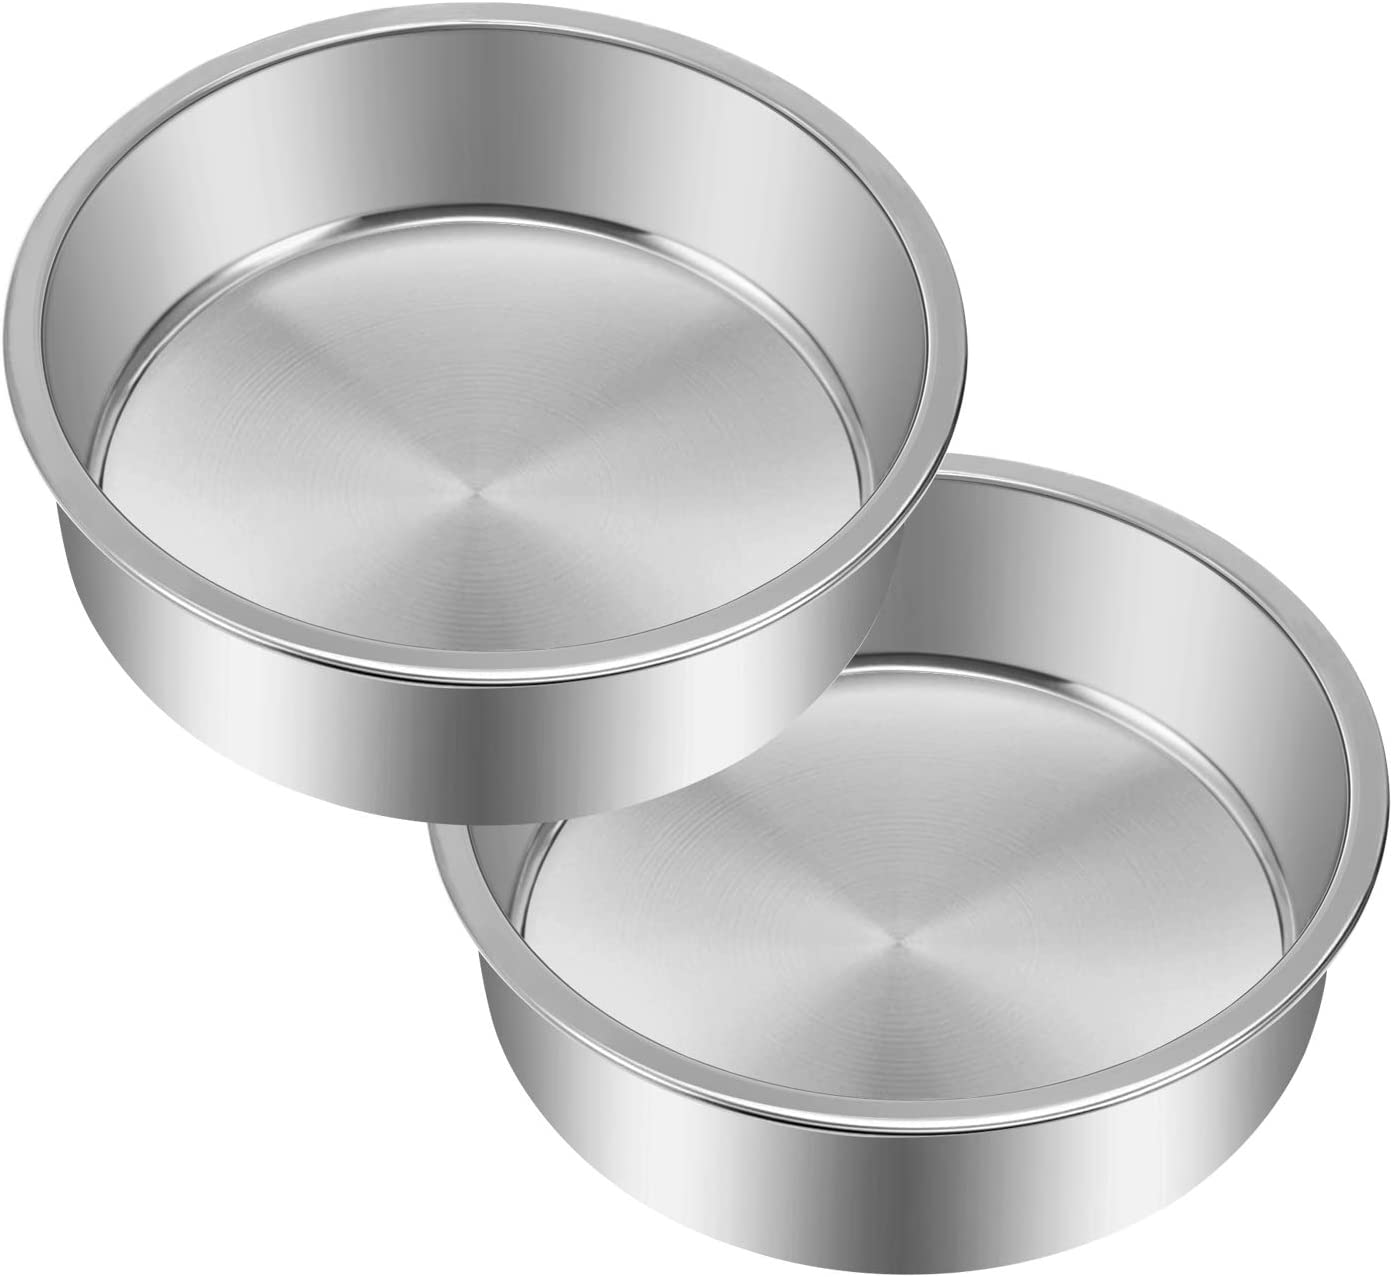 6 Inch Cake Pan Set of 2, Yododo Stainless Steel Round Cake Pans Tier Baking Pans, Fit in Pot Pressure Cooker Air Fryer, One-piece Molding, Heavy Duty, Mirror Finish & Dishwasher Safe